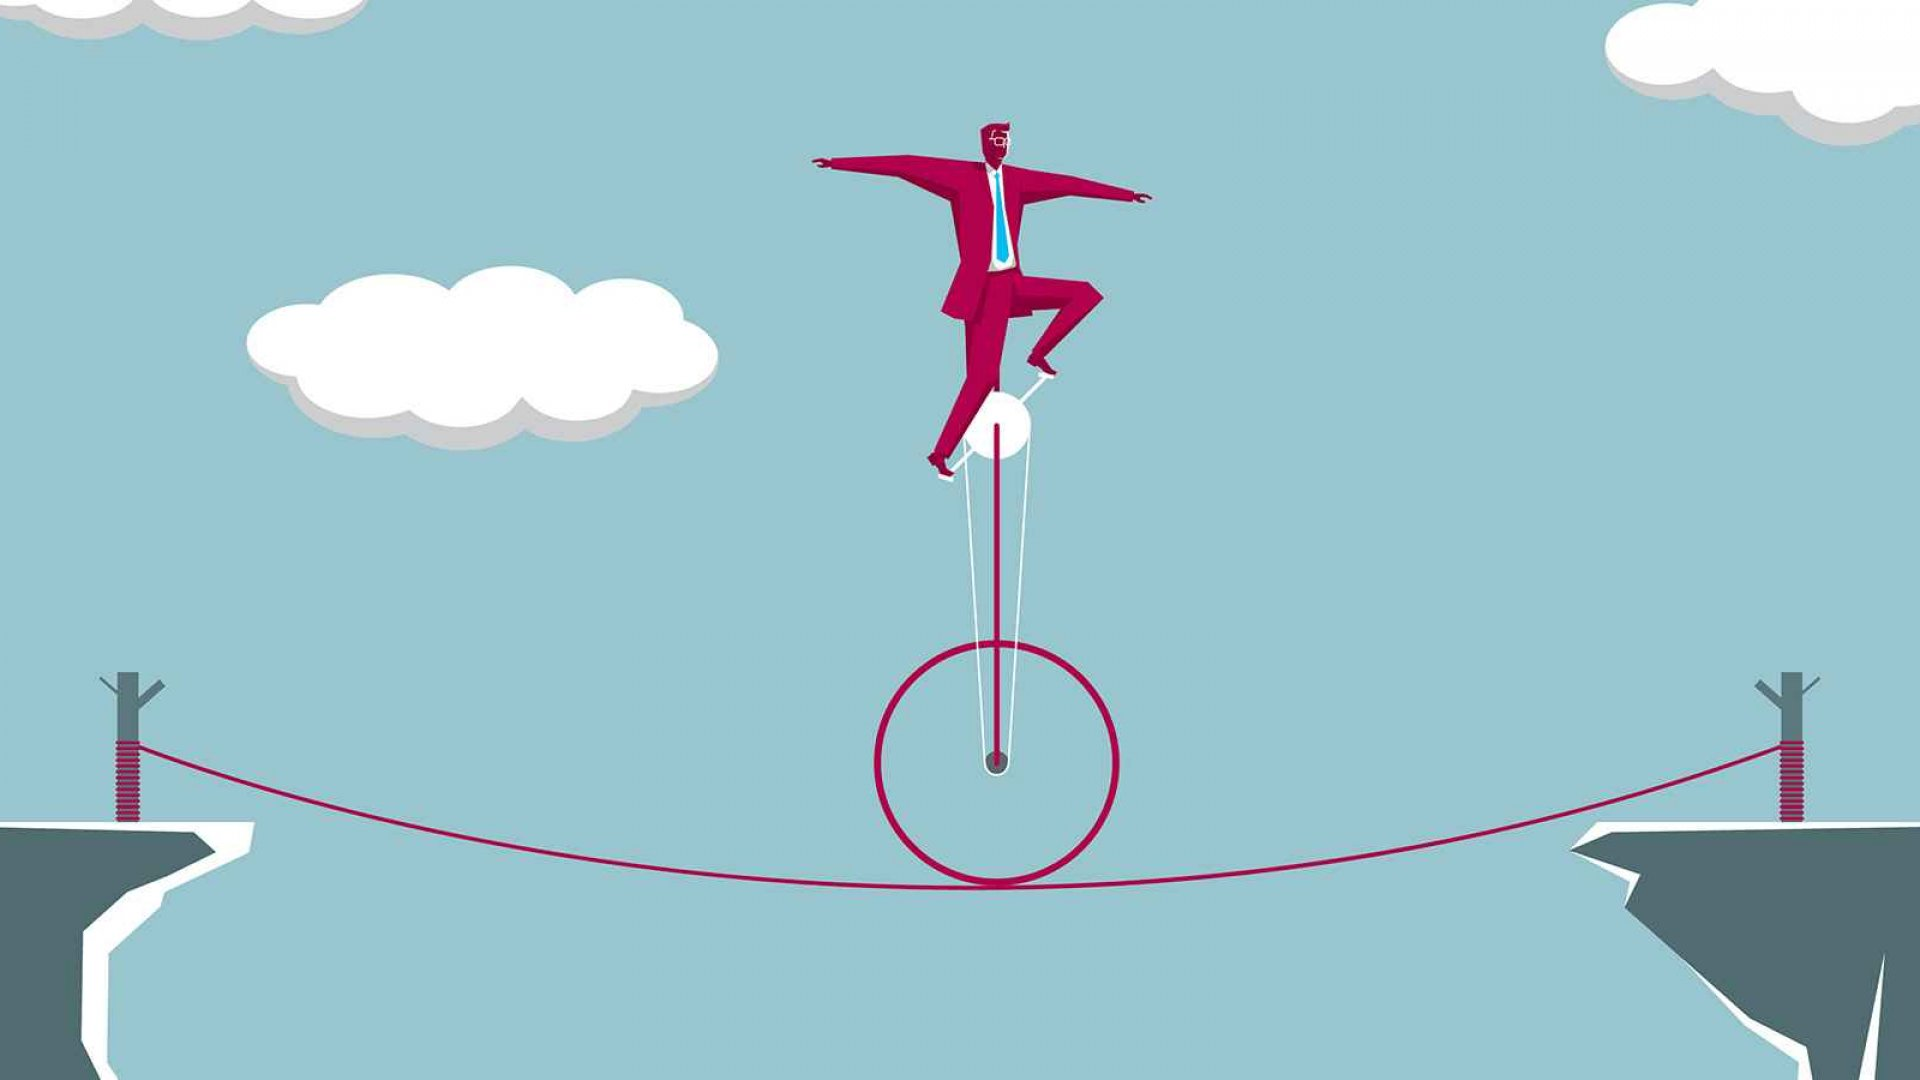 These Are the Risks Every Entrepreneur Needs to Take